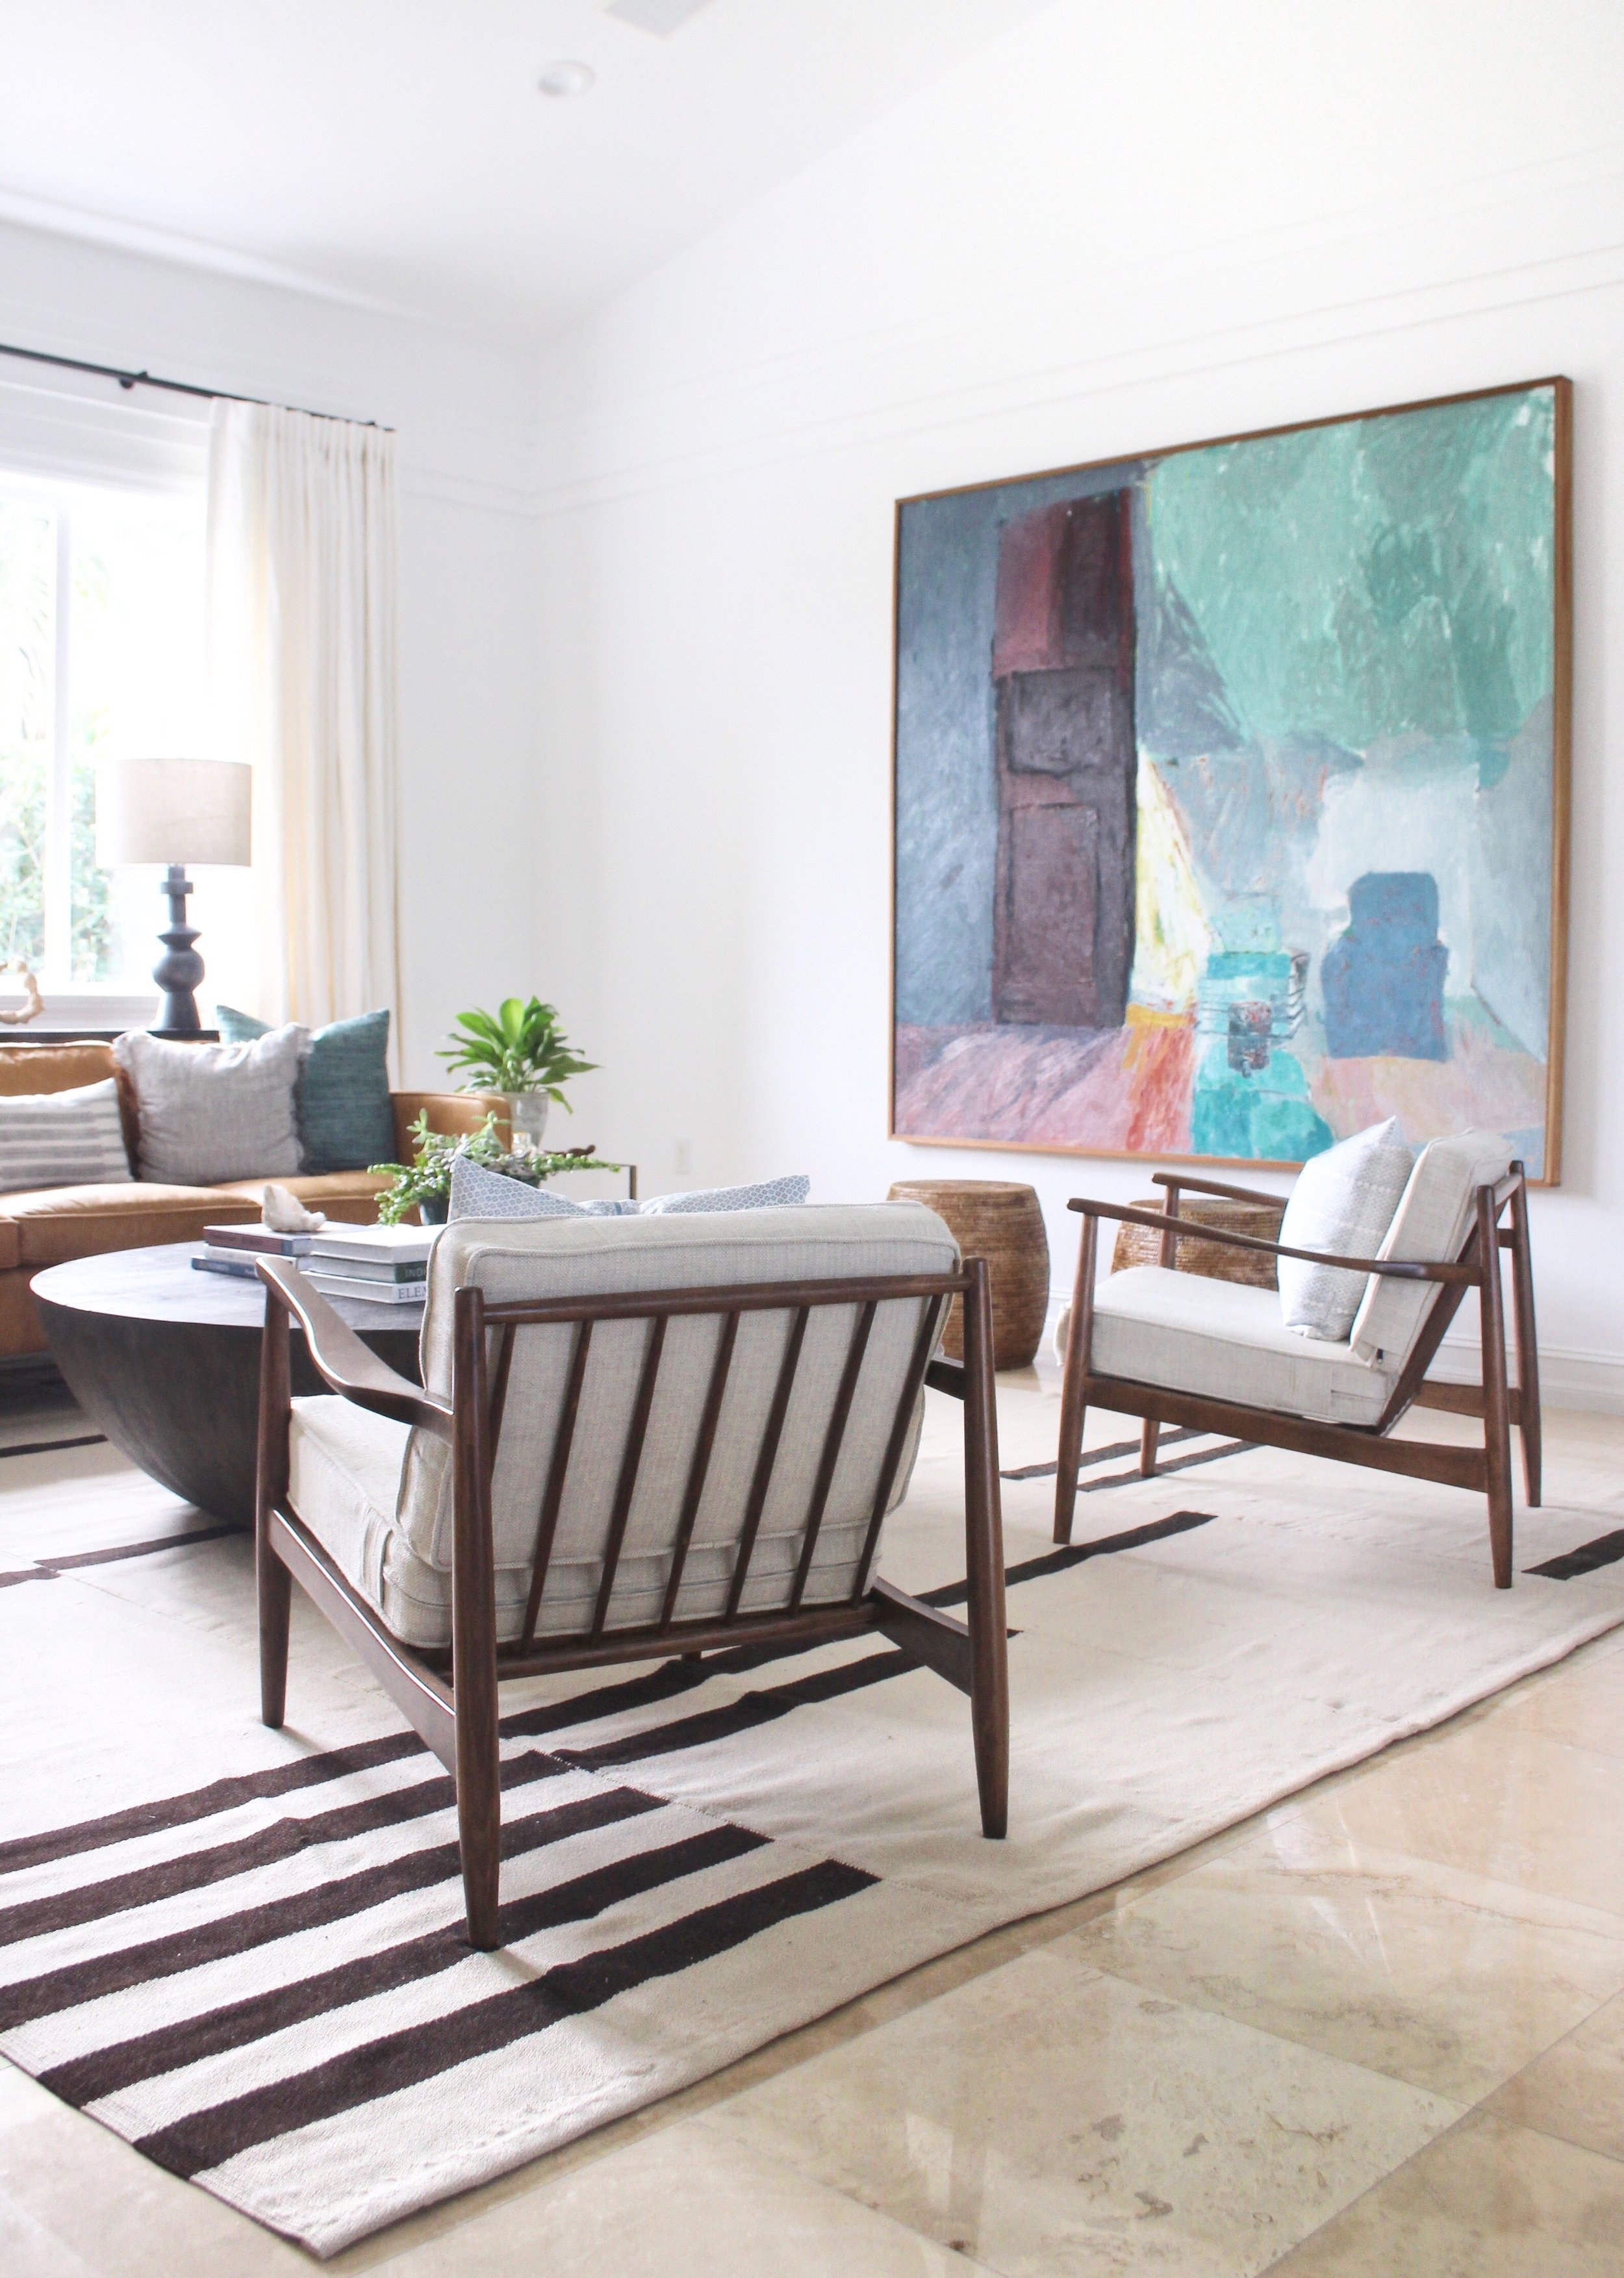 project palmetto bay eclectic - interior design - the habitat collective